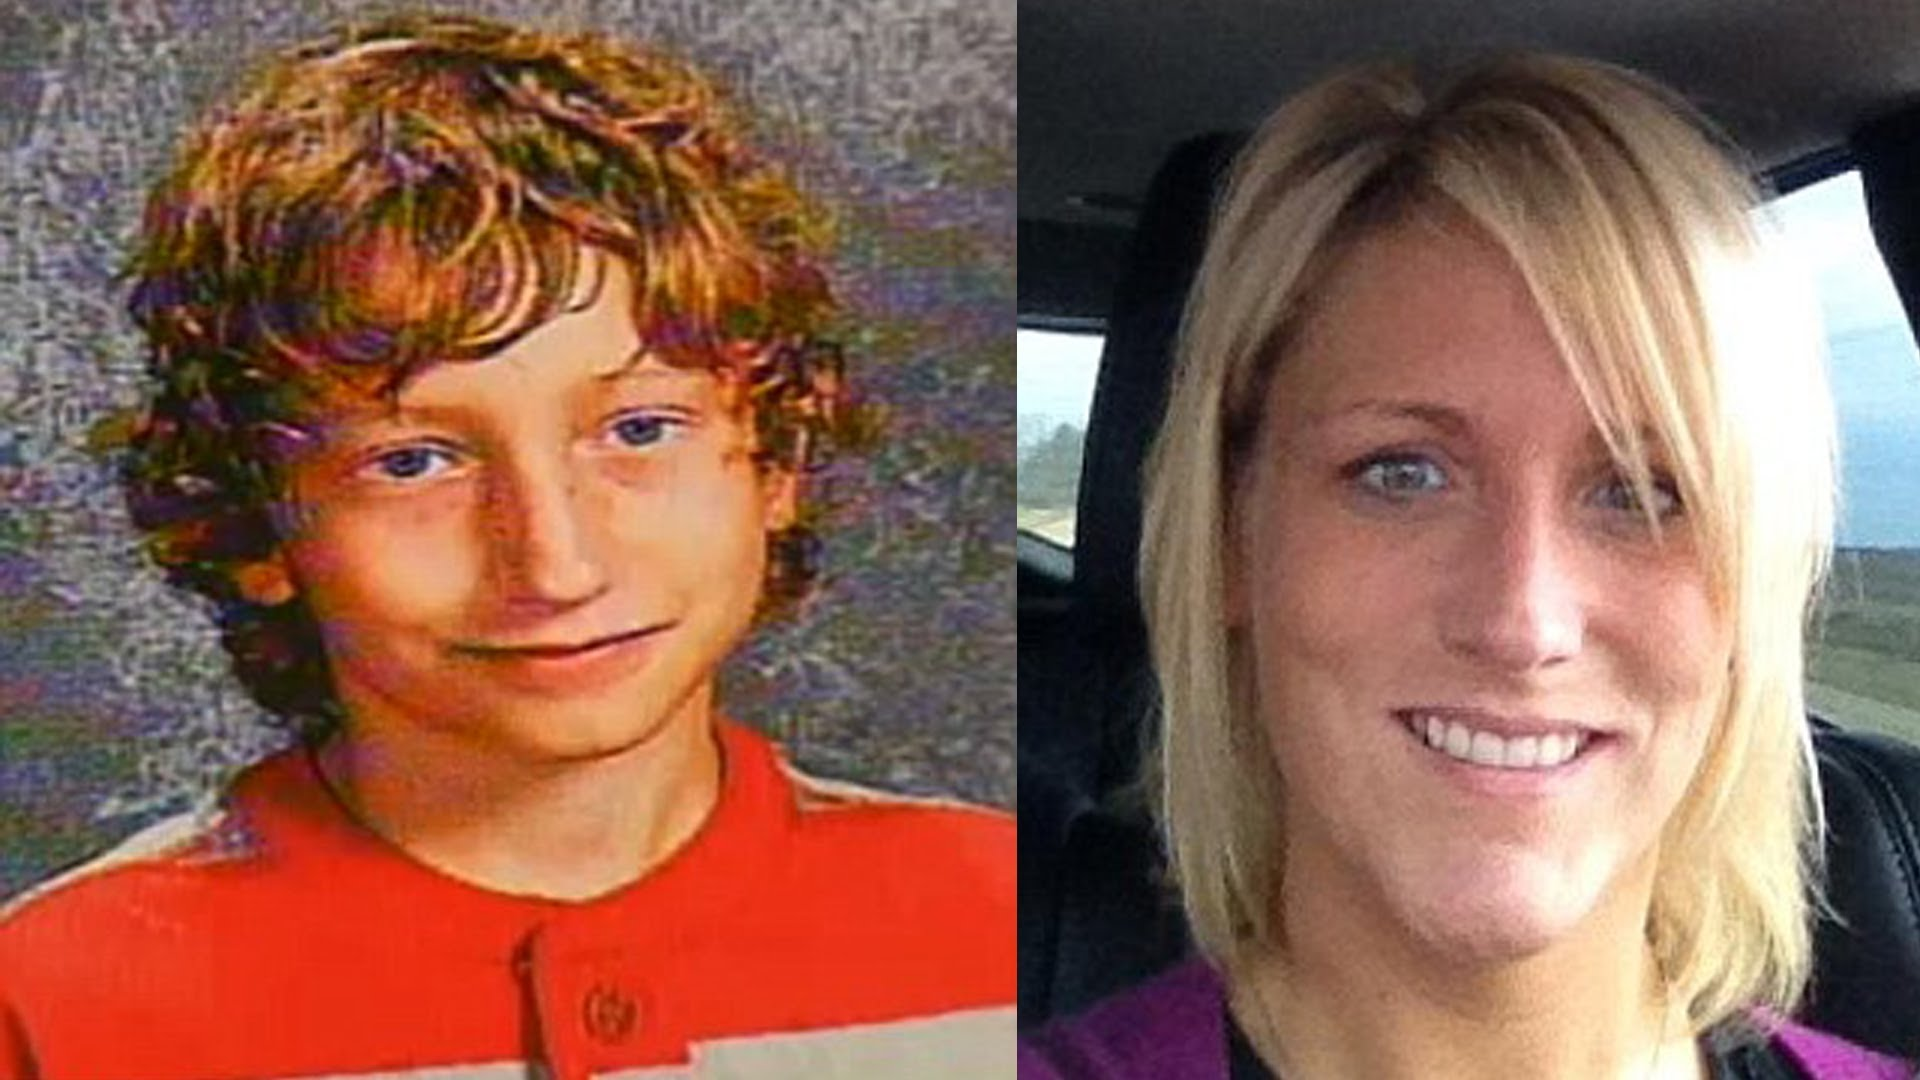 Noah Crooks: at 13 he tries to rape his mother and then